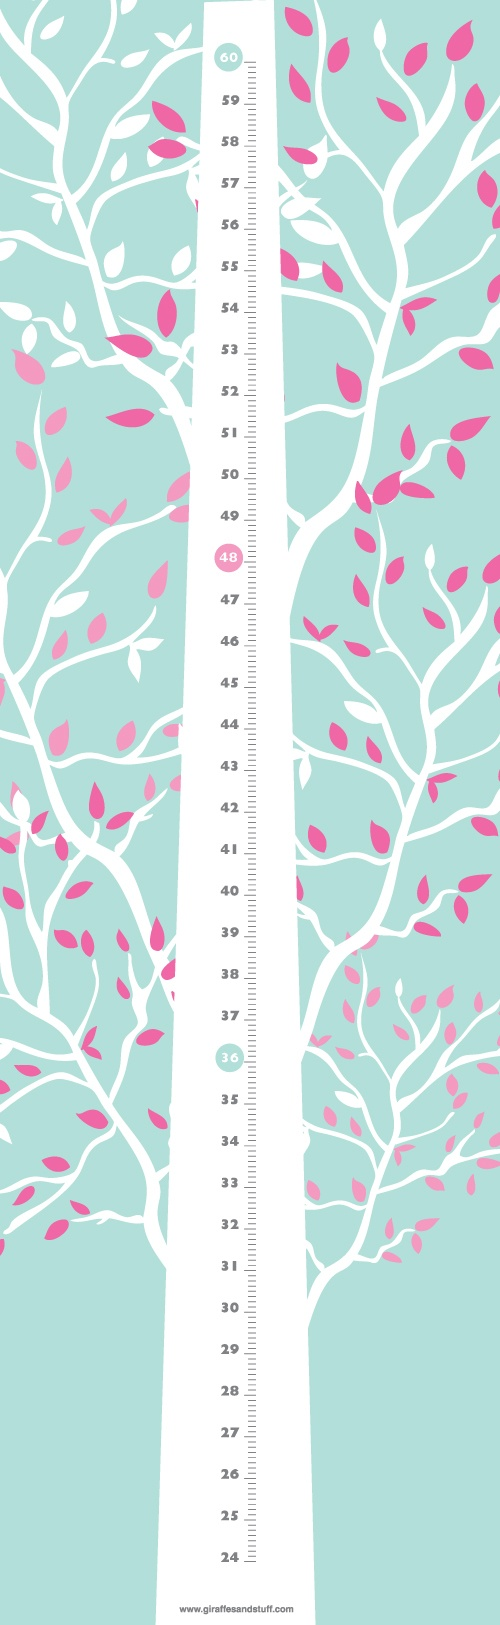 The 25 best growth chart for babies ideas on pinterest baby wonder tree tree with branches growth height nvjuhfo Gallery